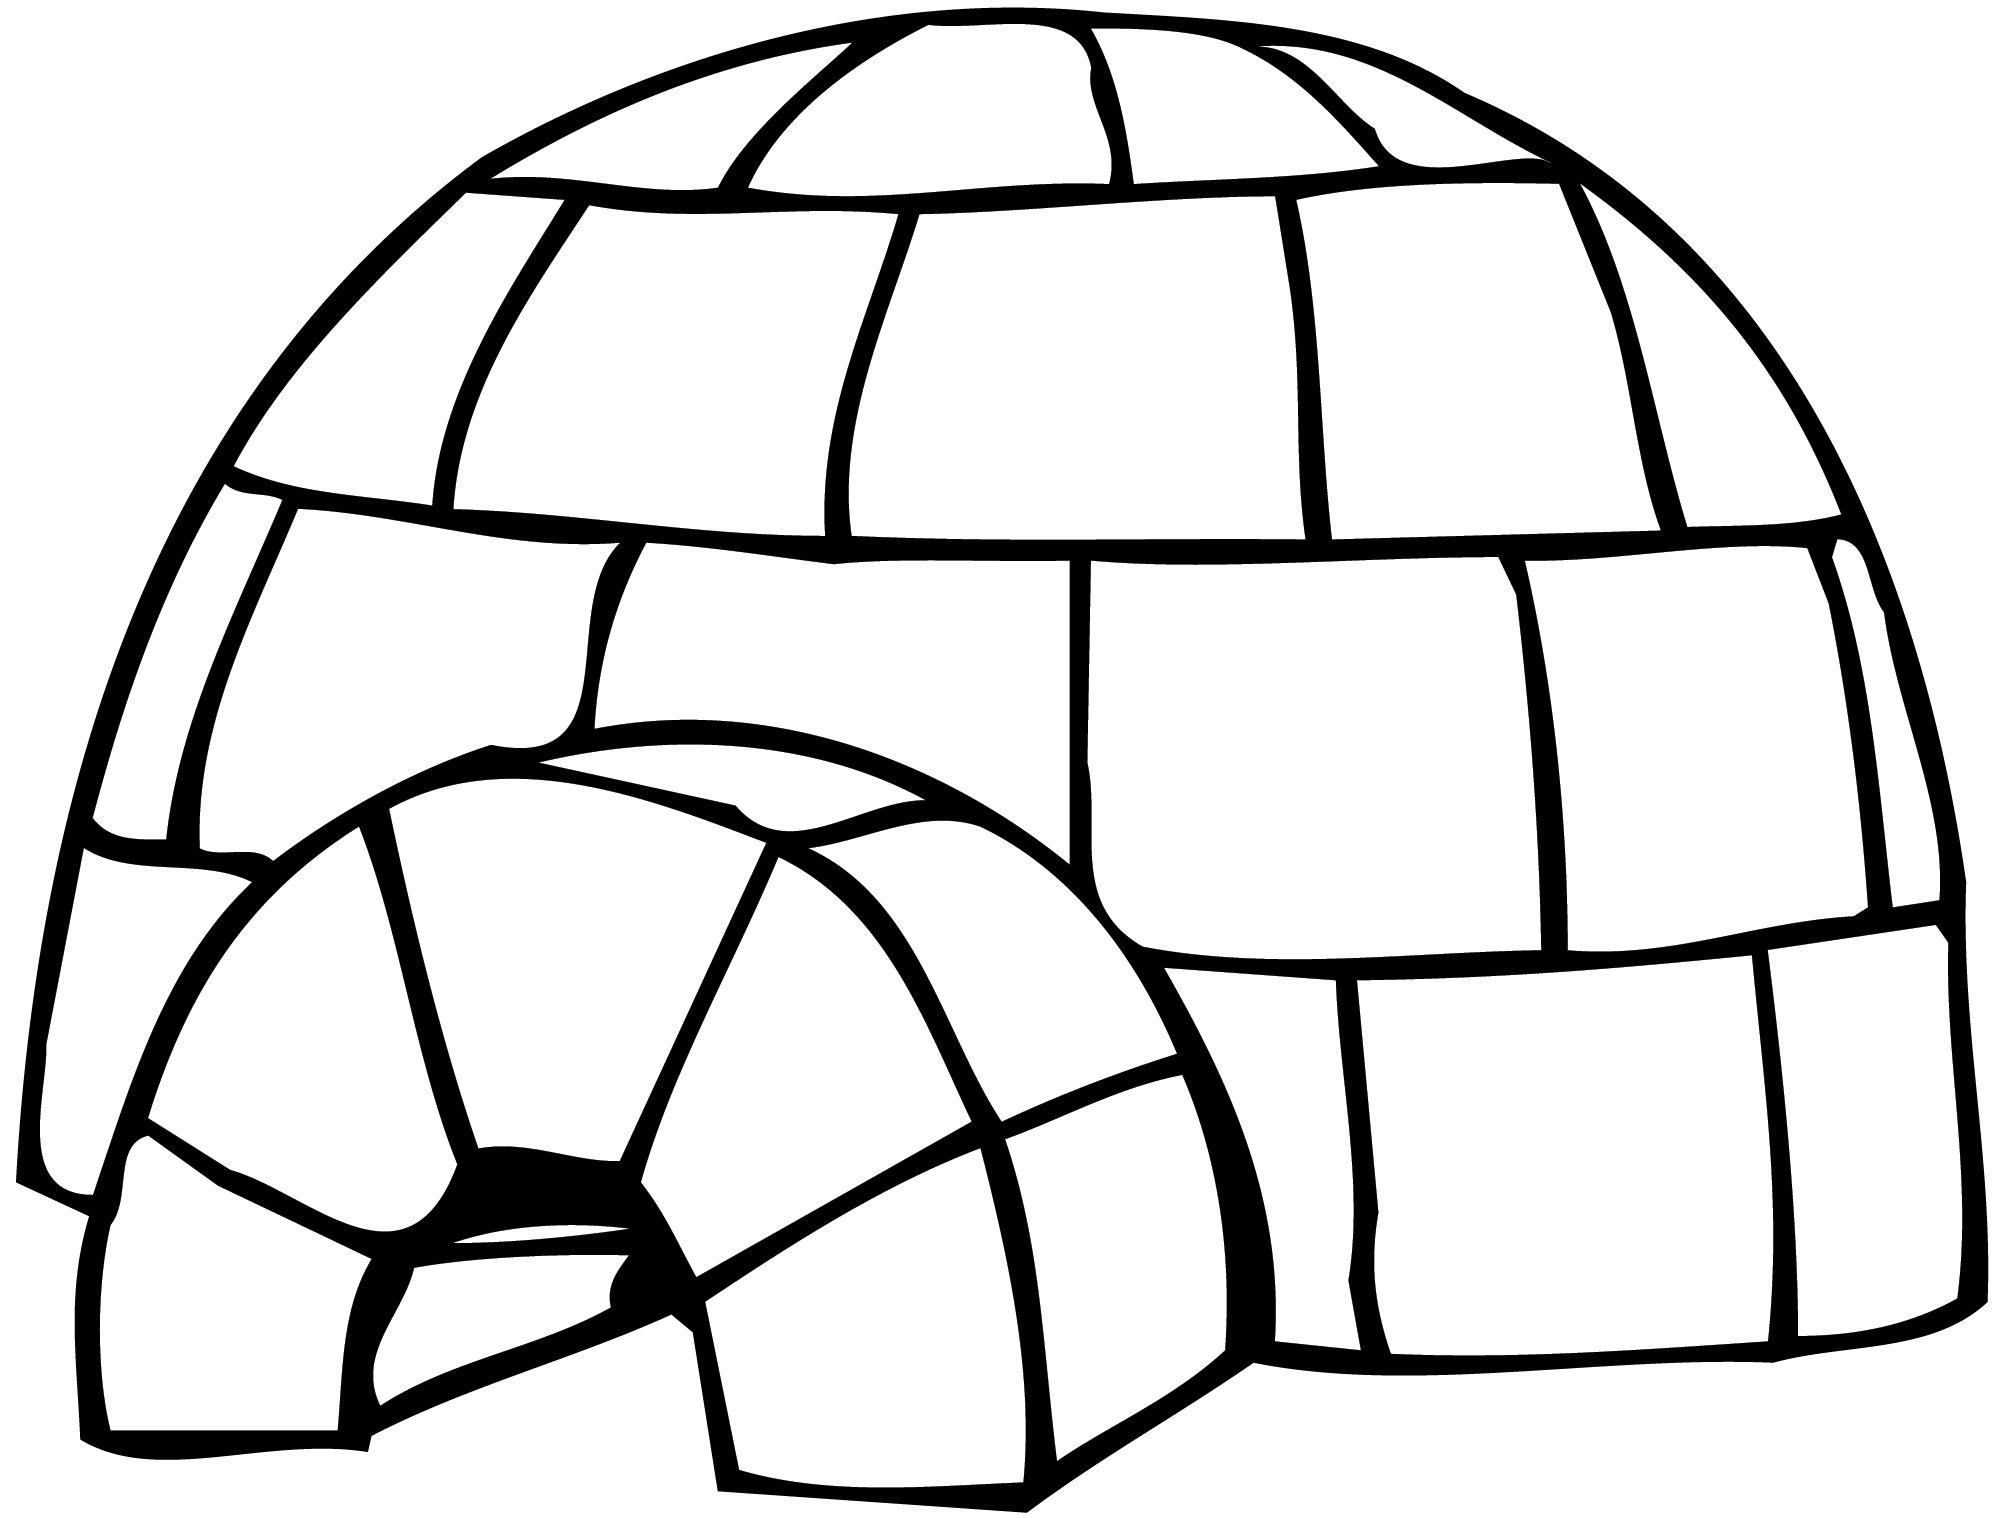 38 Coloring Page Igloo Penguin Coloring Pages Igloo Craft Coloring Pages